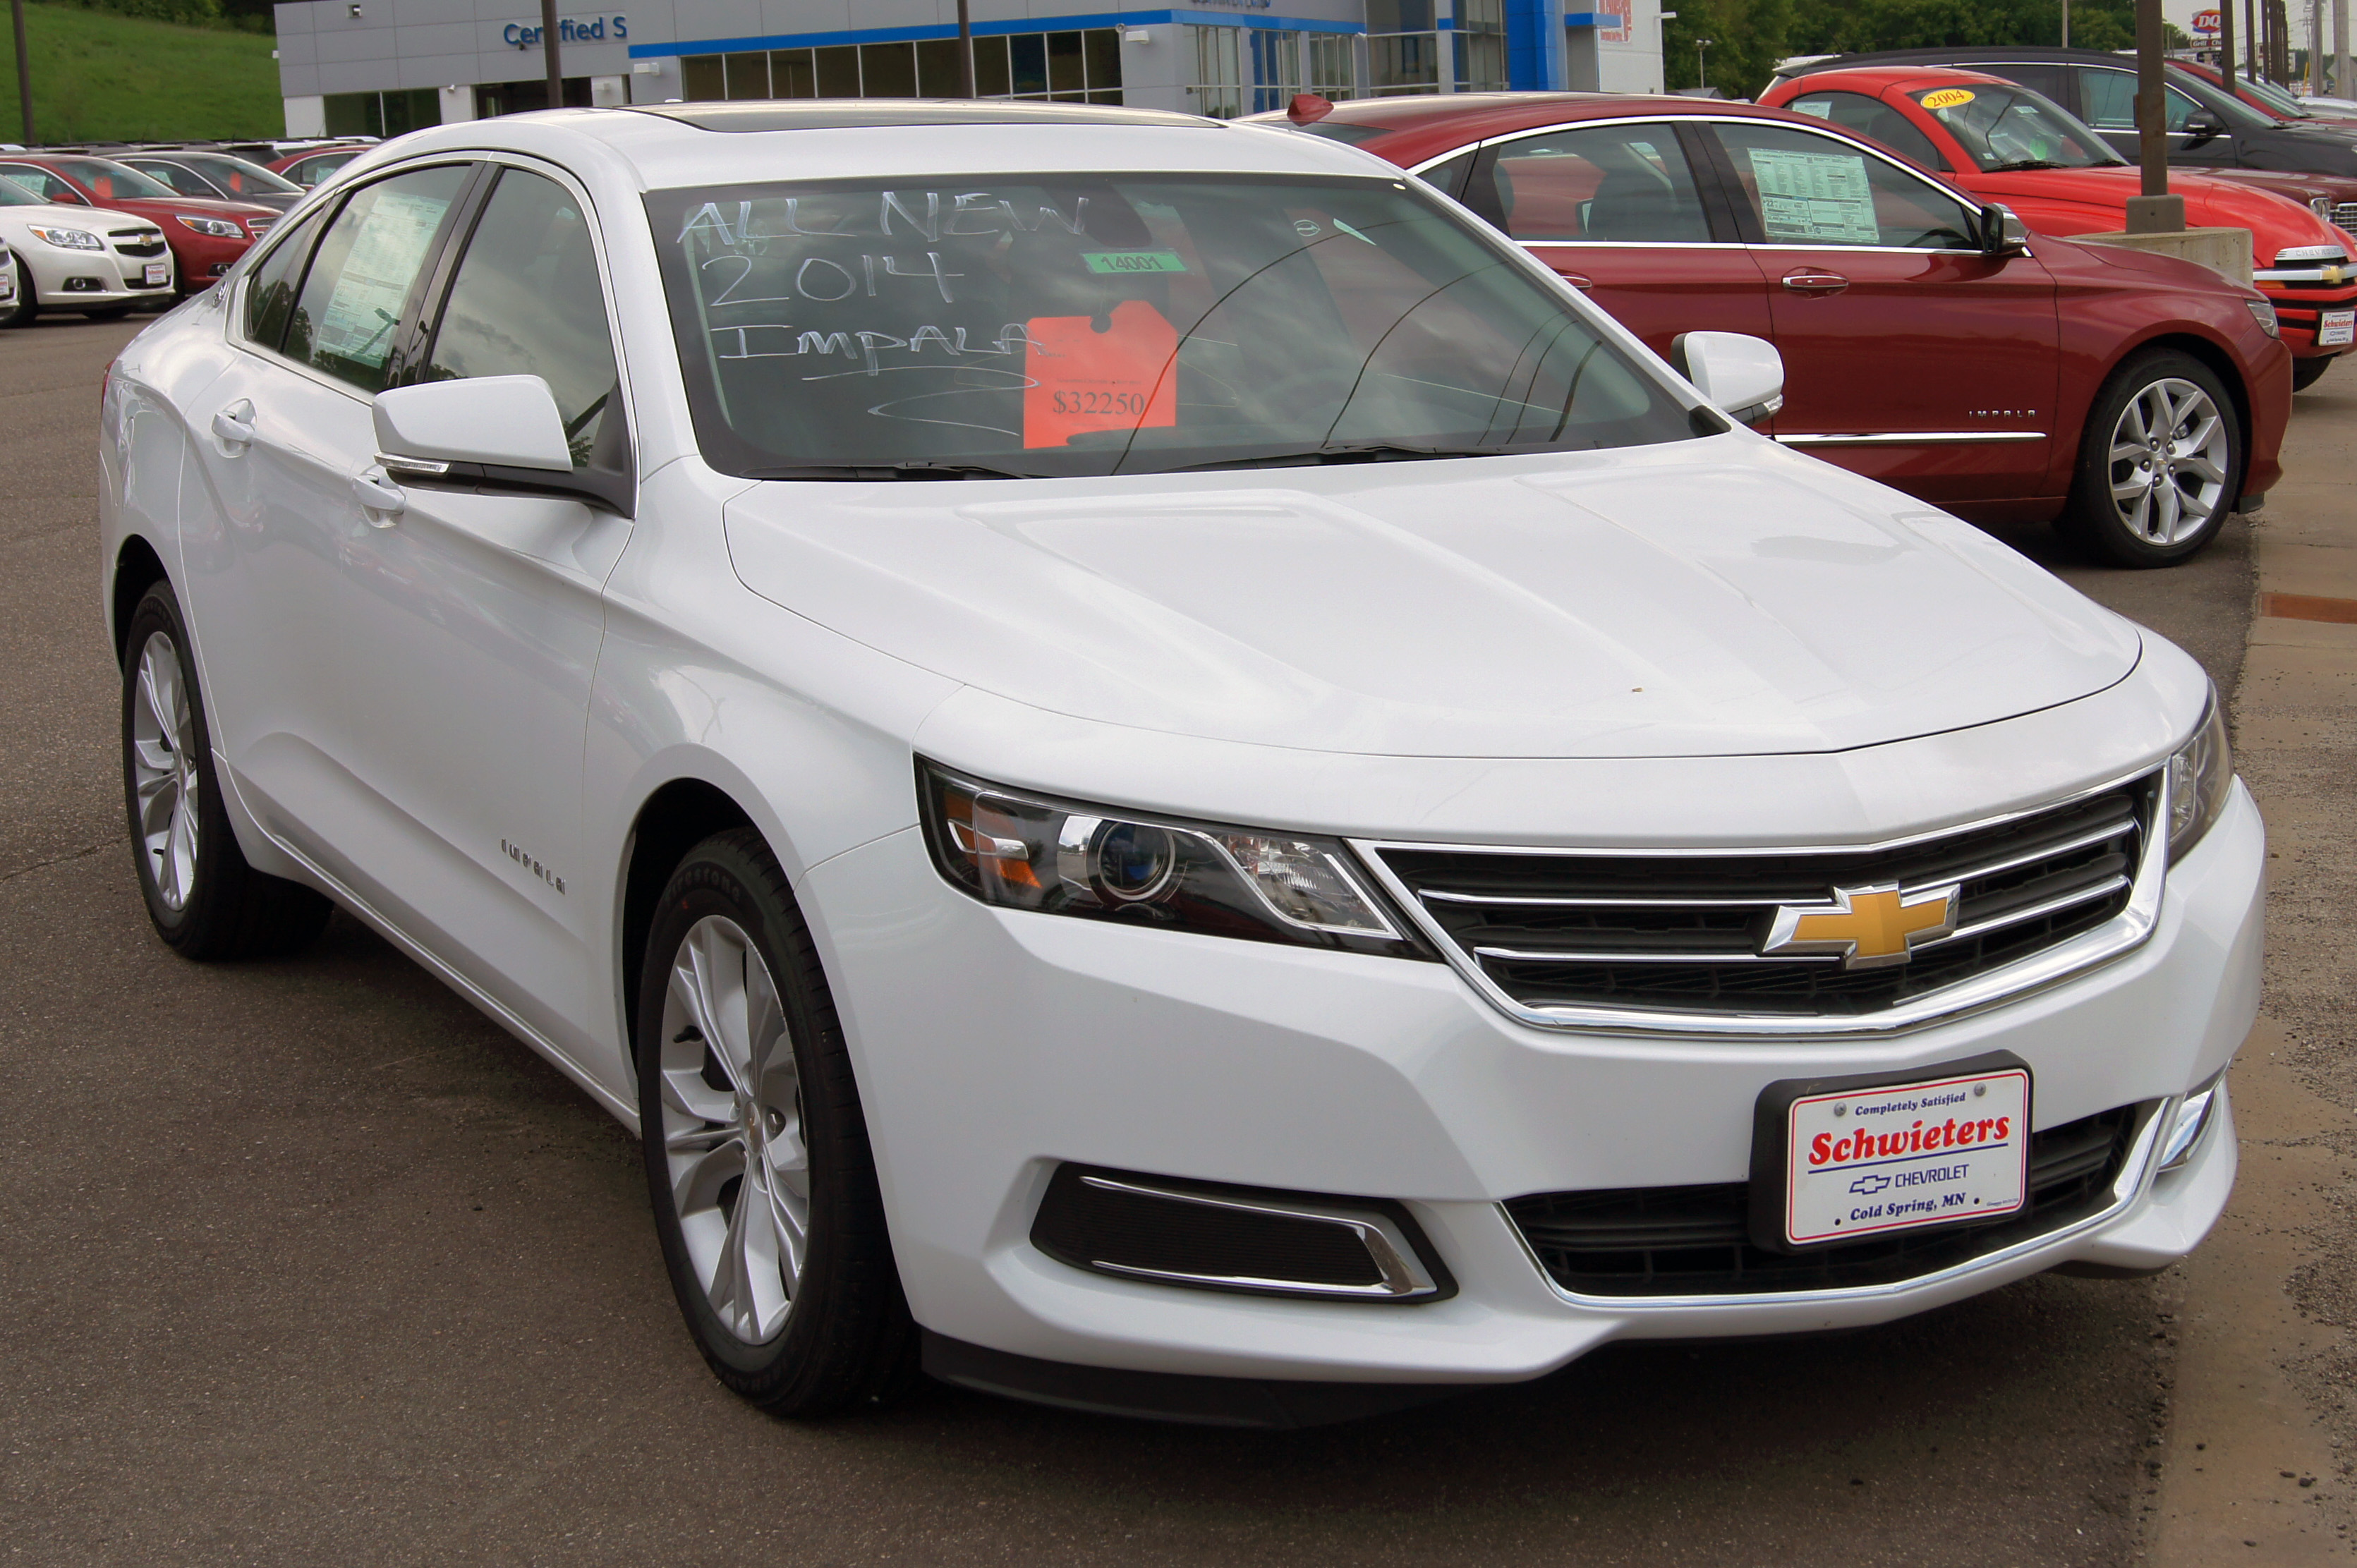 2014 Chevrolet Impala Limited Information and photos ZombieDrive